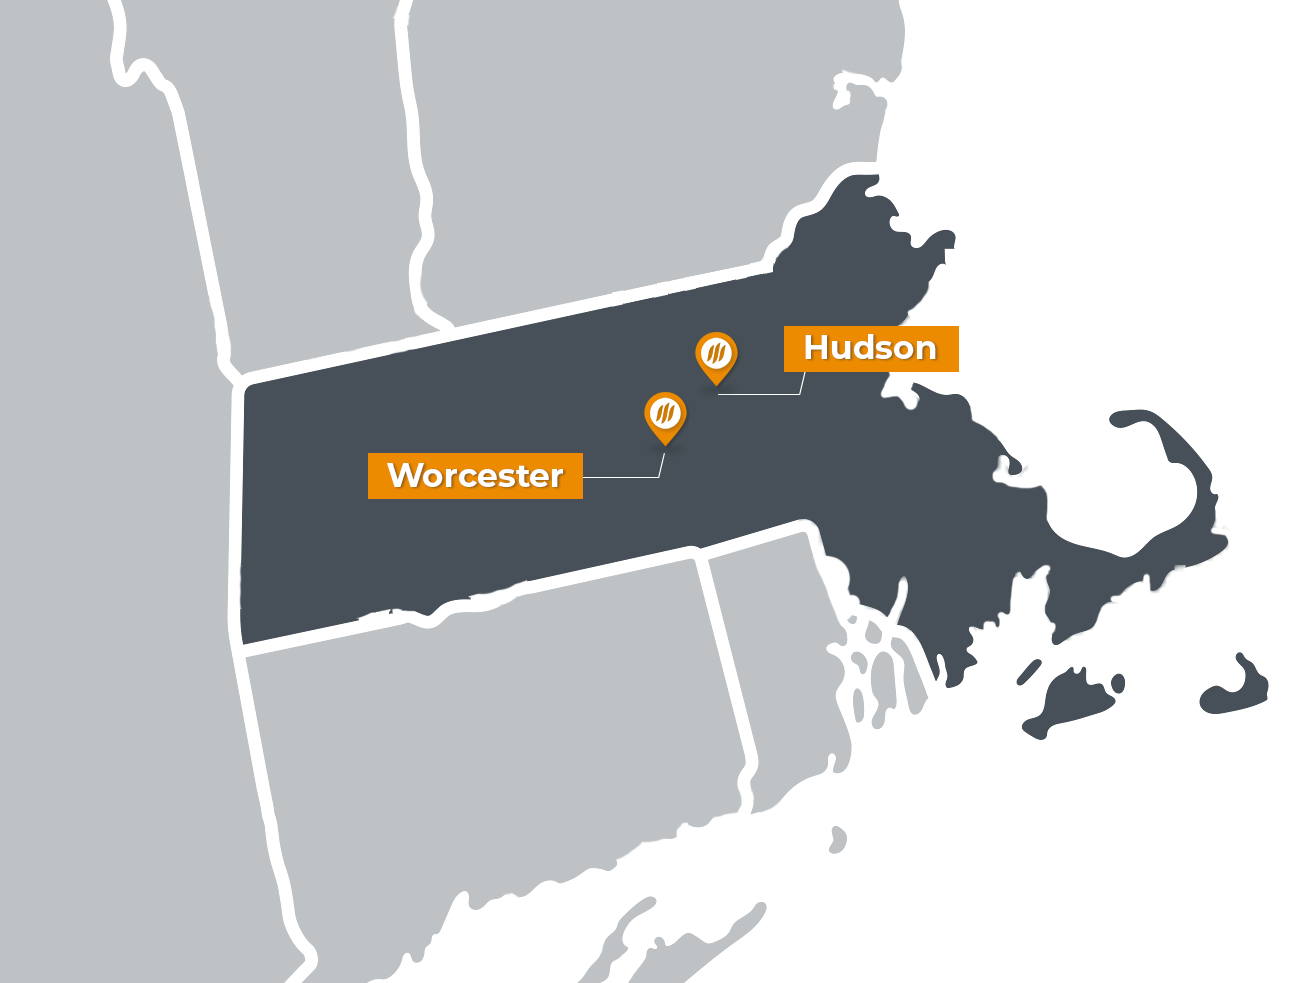 Map of Massachussets with pins for Workers PlanIt locations in Hudson and Worcester